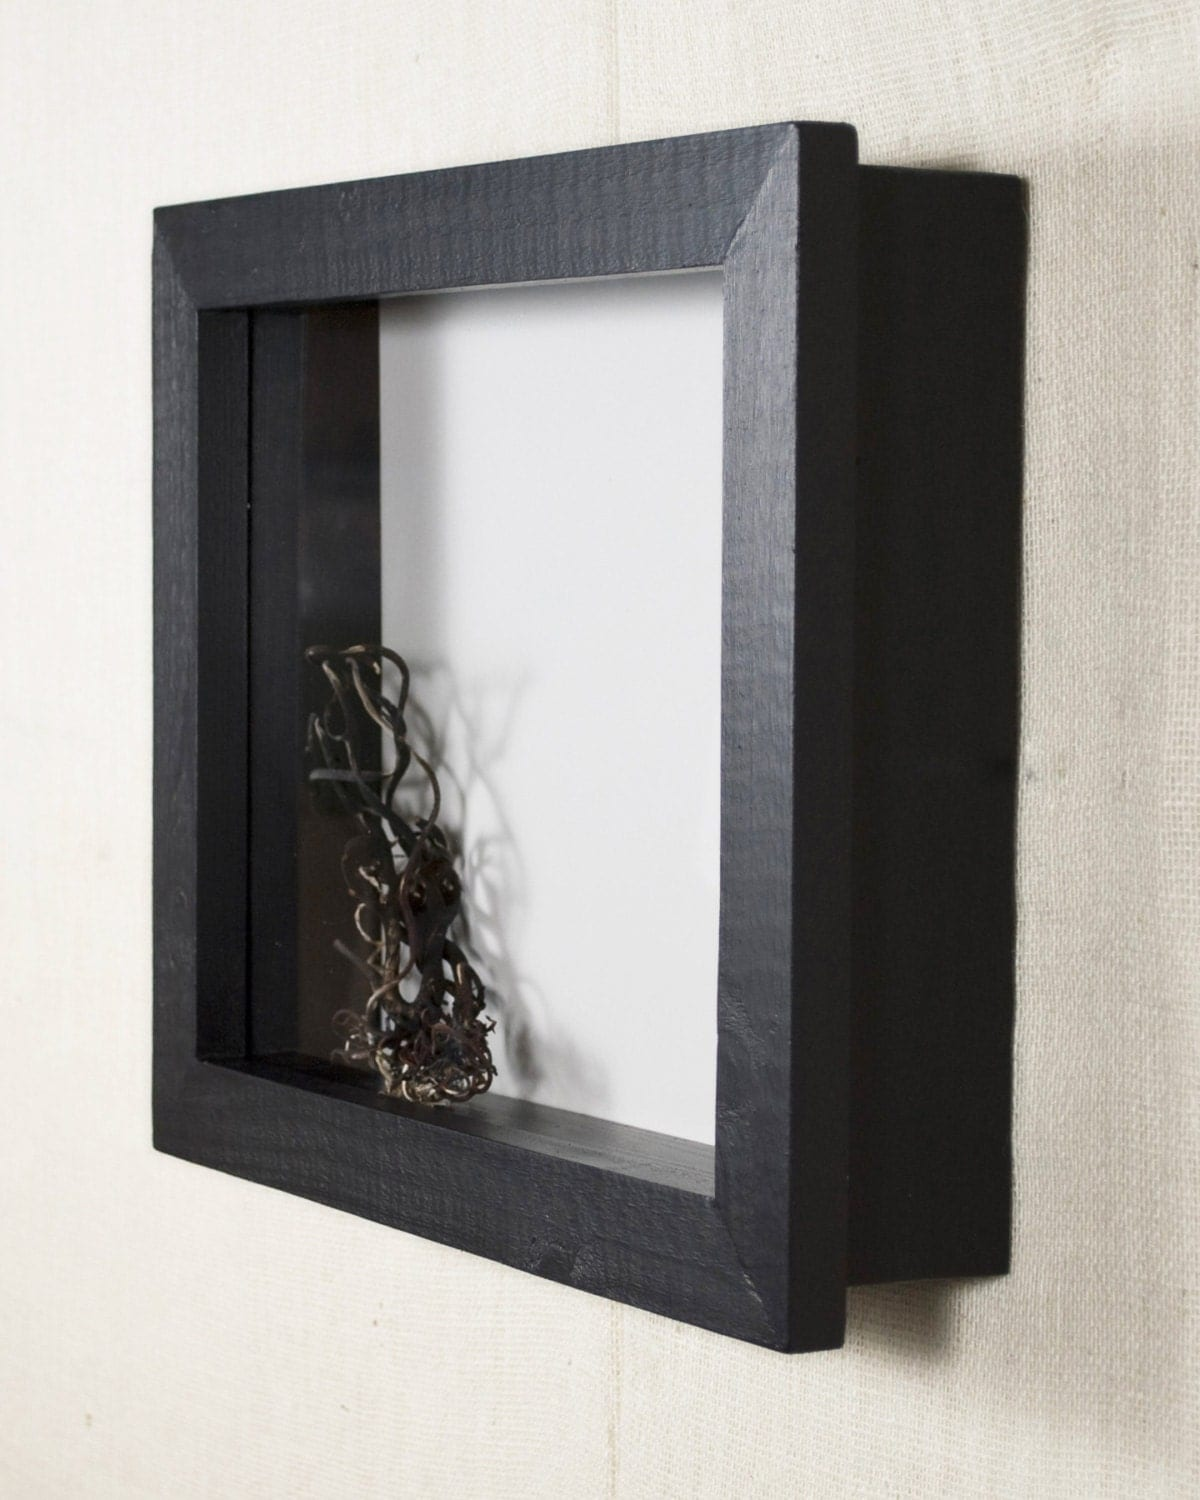 16x20 Shadow Box Frame Extra Deep Shadow Box By Anothercup